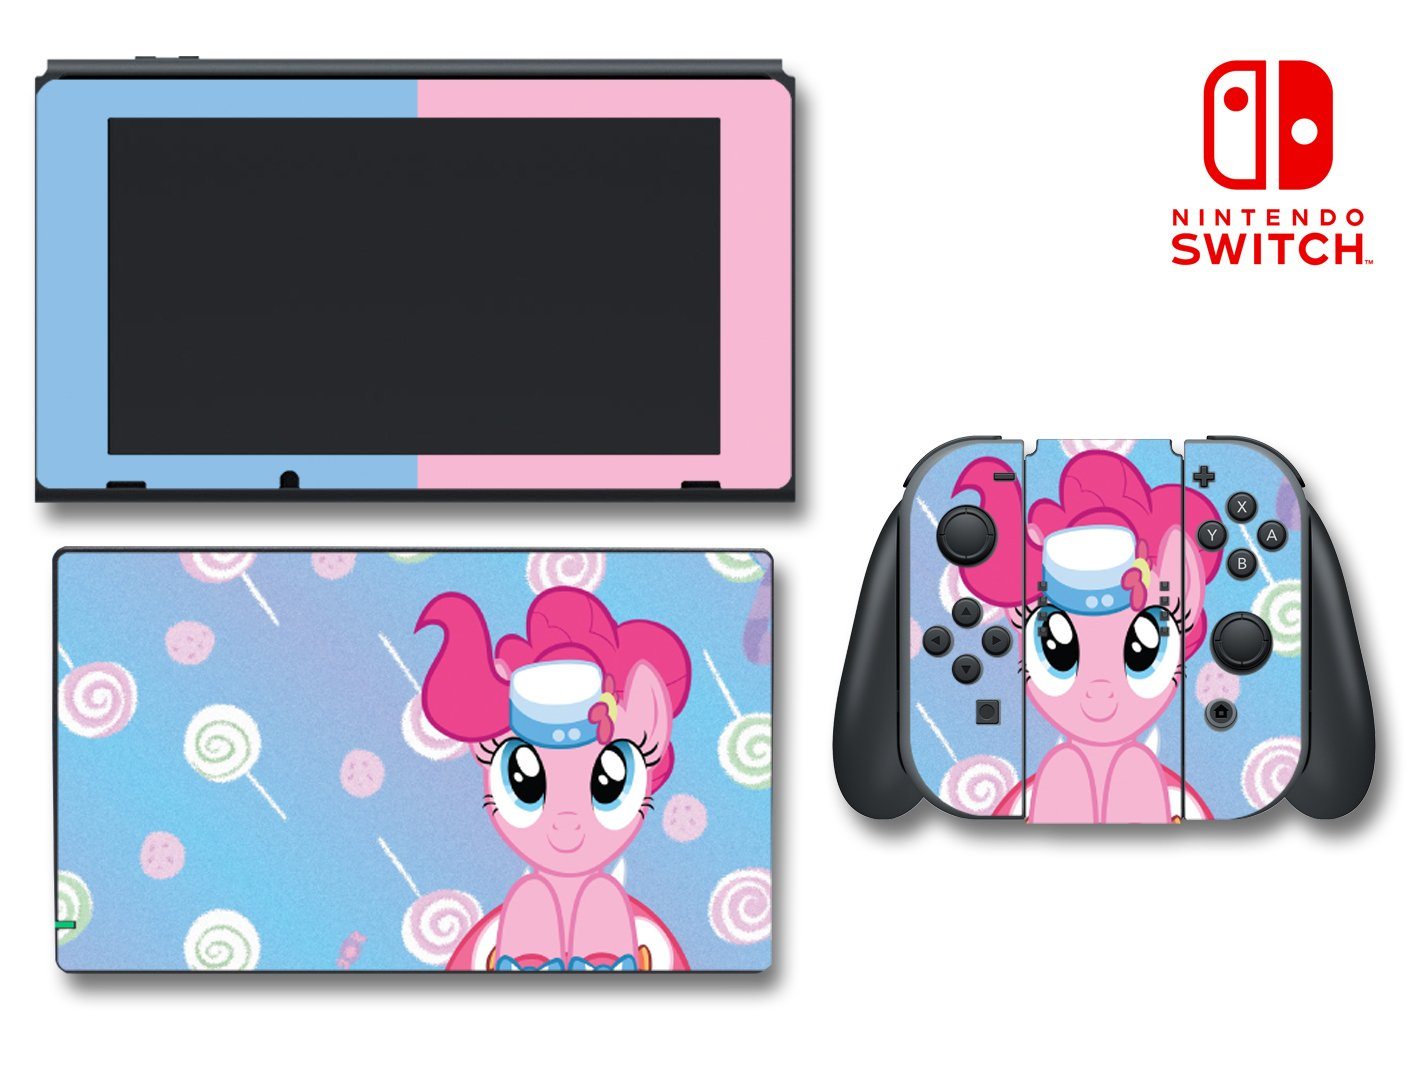 My Little Pony MLP Pinkie Pie Lollipop Video Game Vinyl Decal Skin Sticker Cover for Nintendo Switch Console System